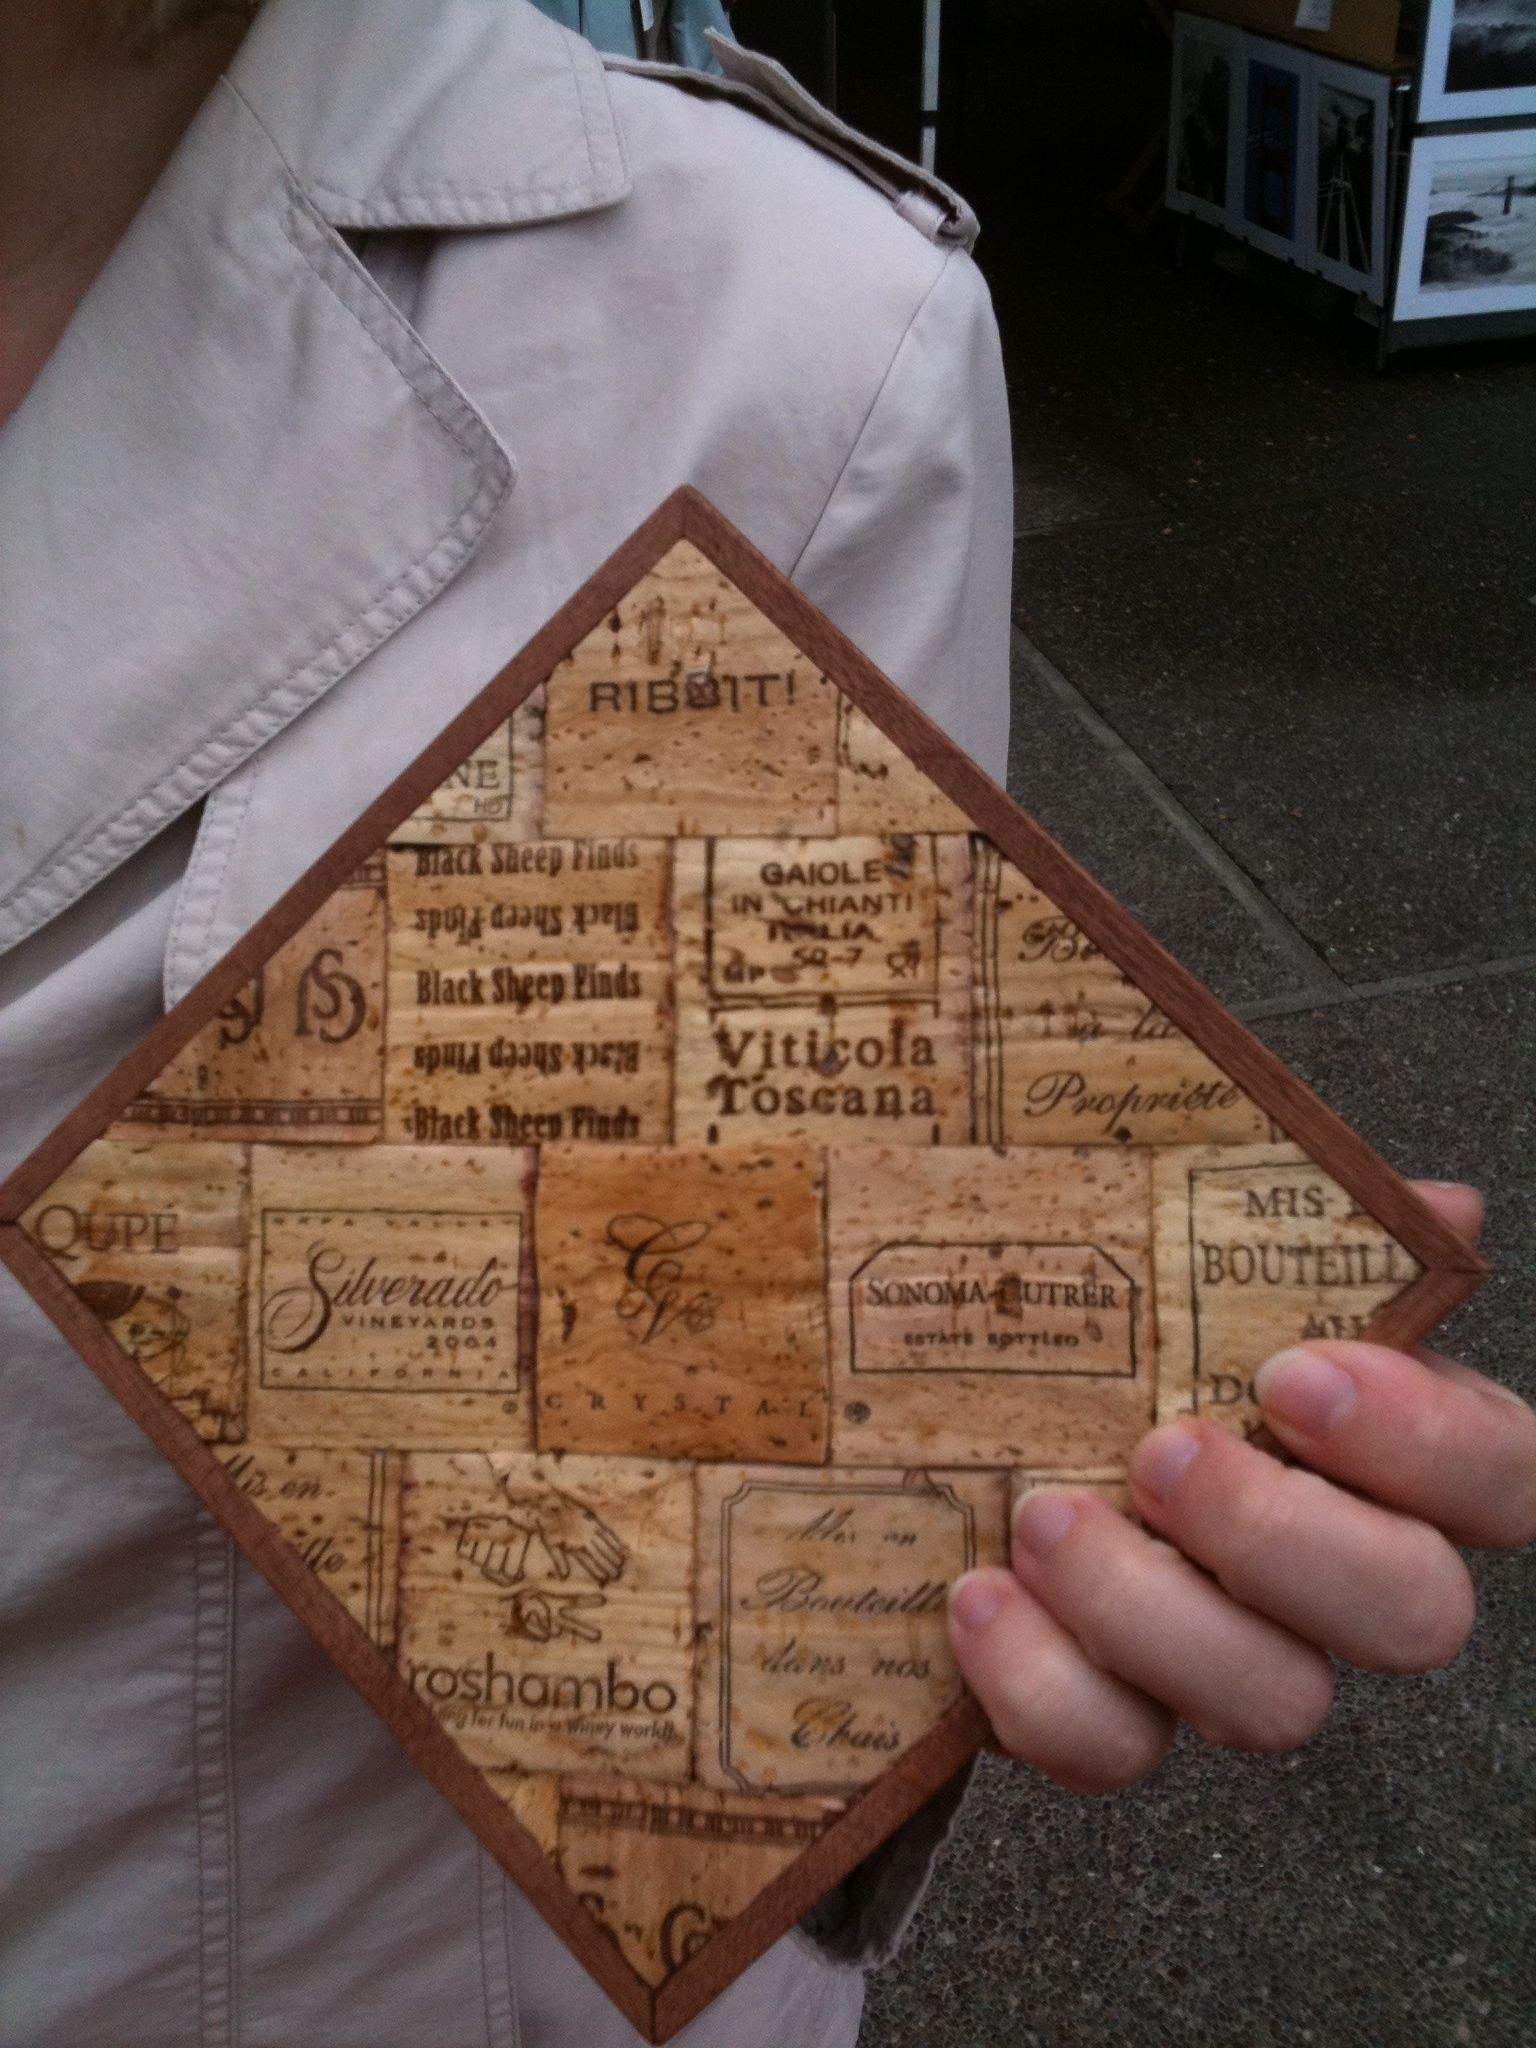 Used wine corks for crafts - 100 Hand Crafted In San Francisco Ca From Real Natural Wine Corks Mahogany Wood